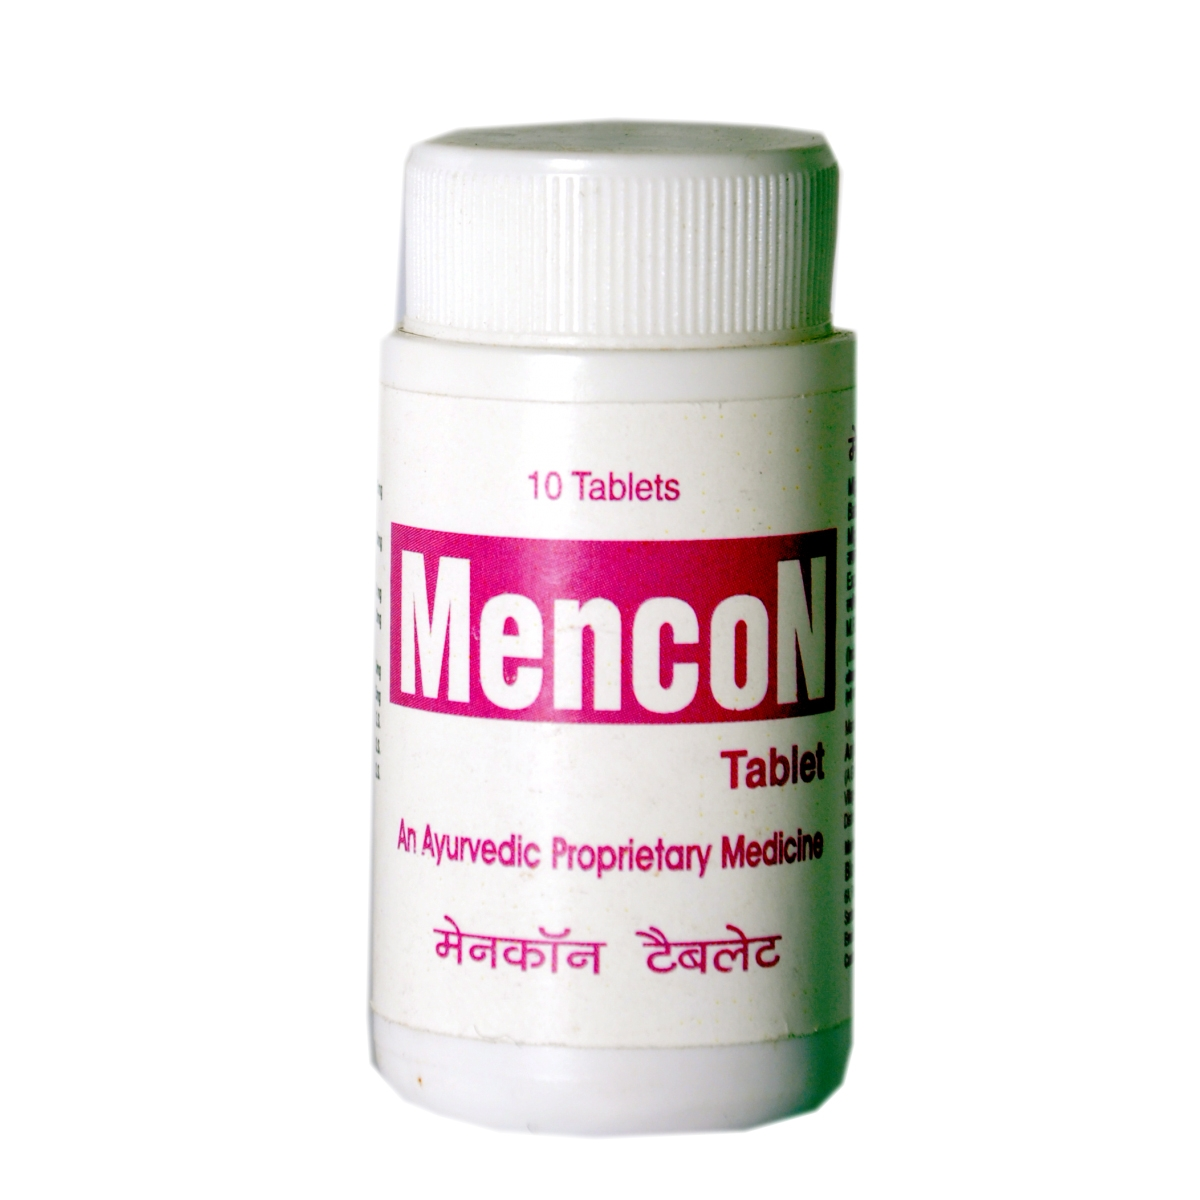 Mencon Tablet In Madhepura